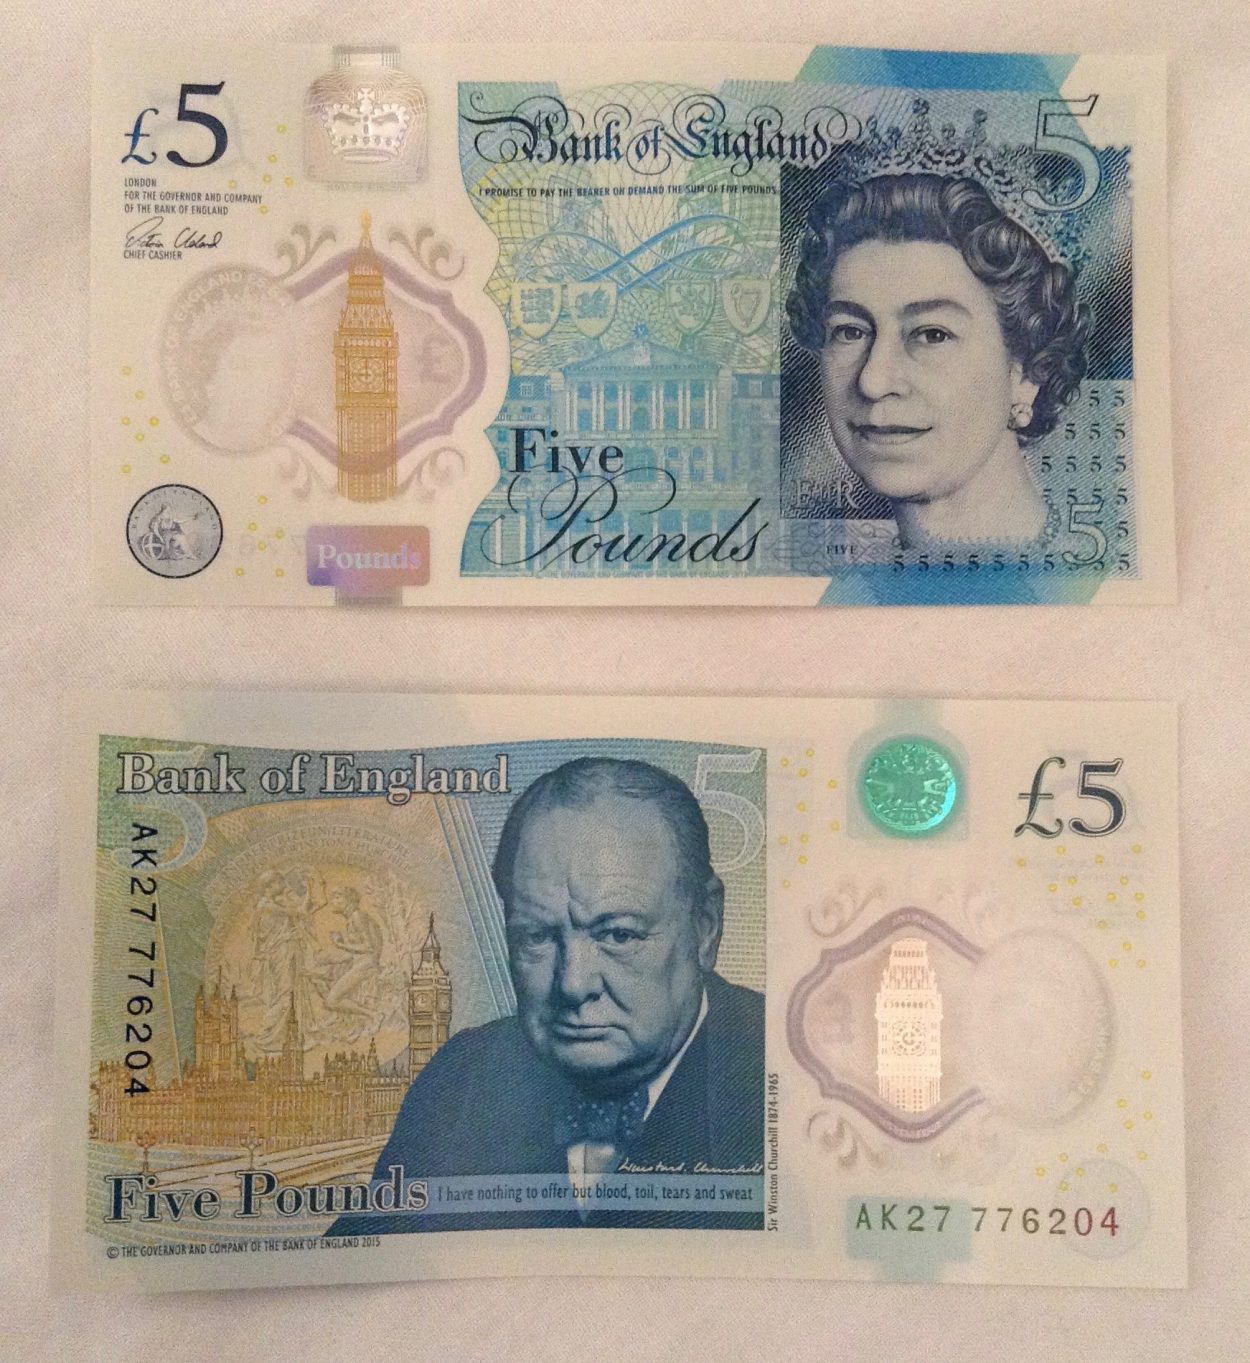 New fivers